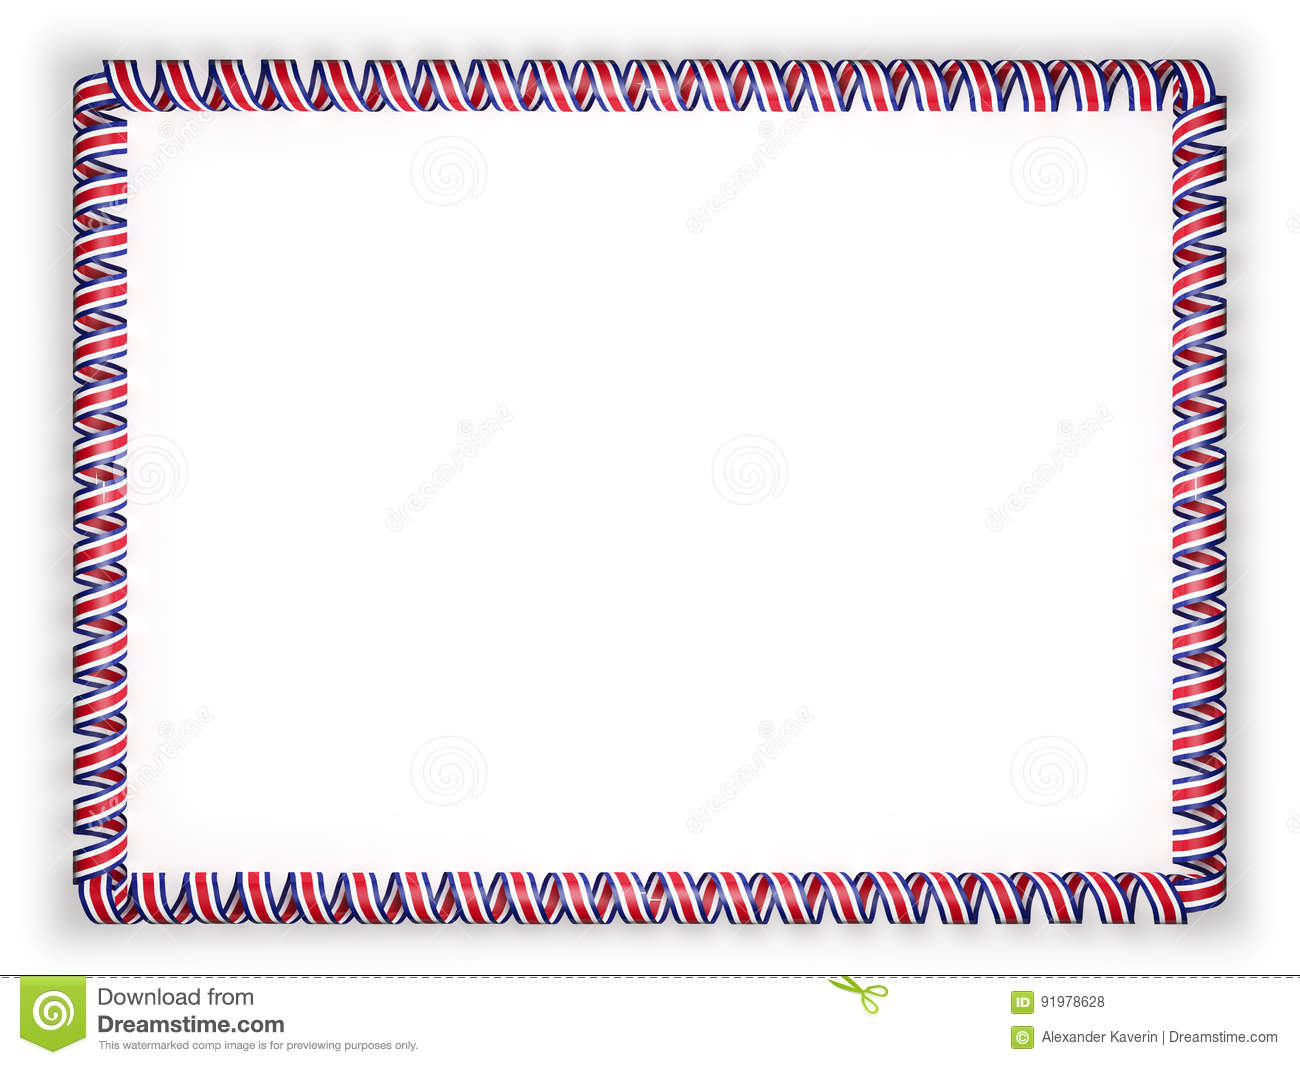 Frame And Border Of Ribbon With The Costa Rica Flag 3d